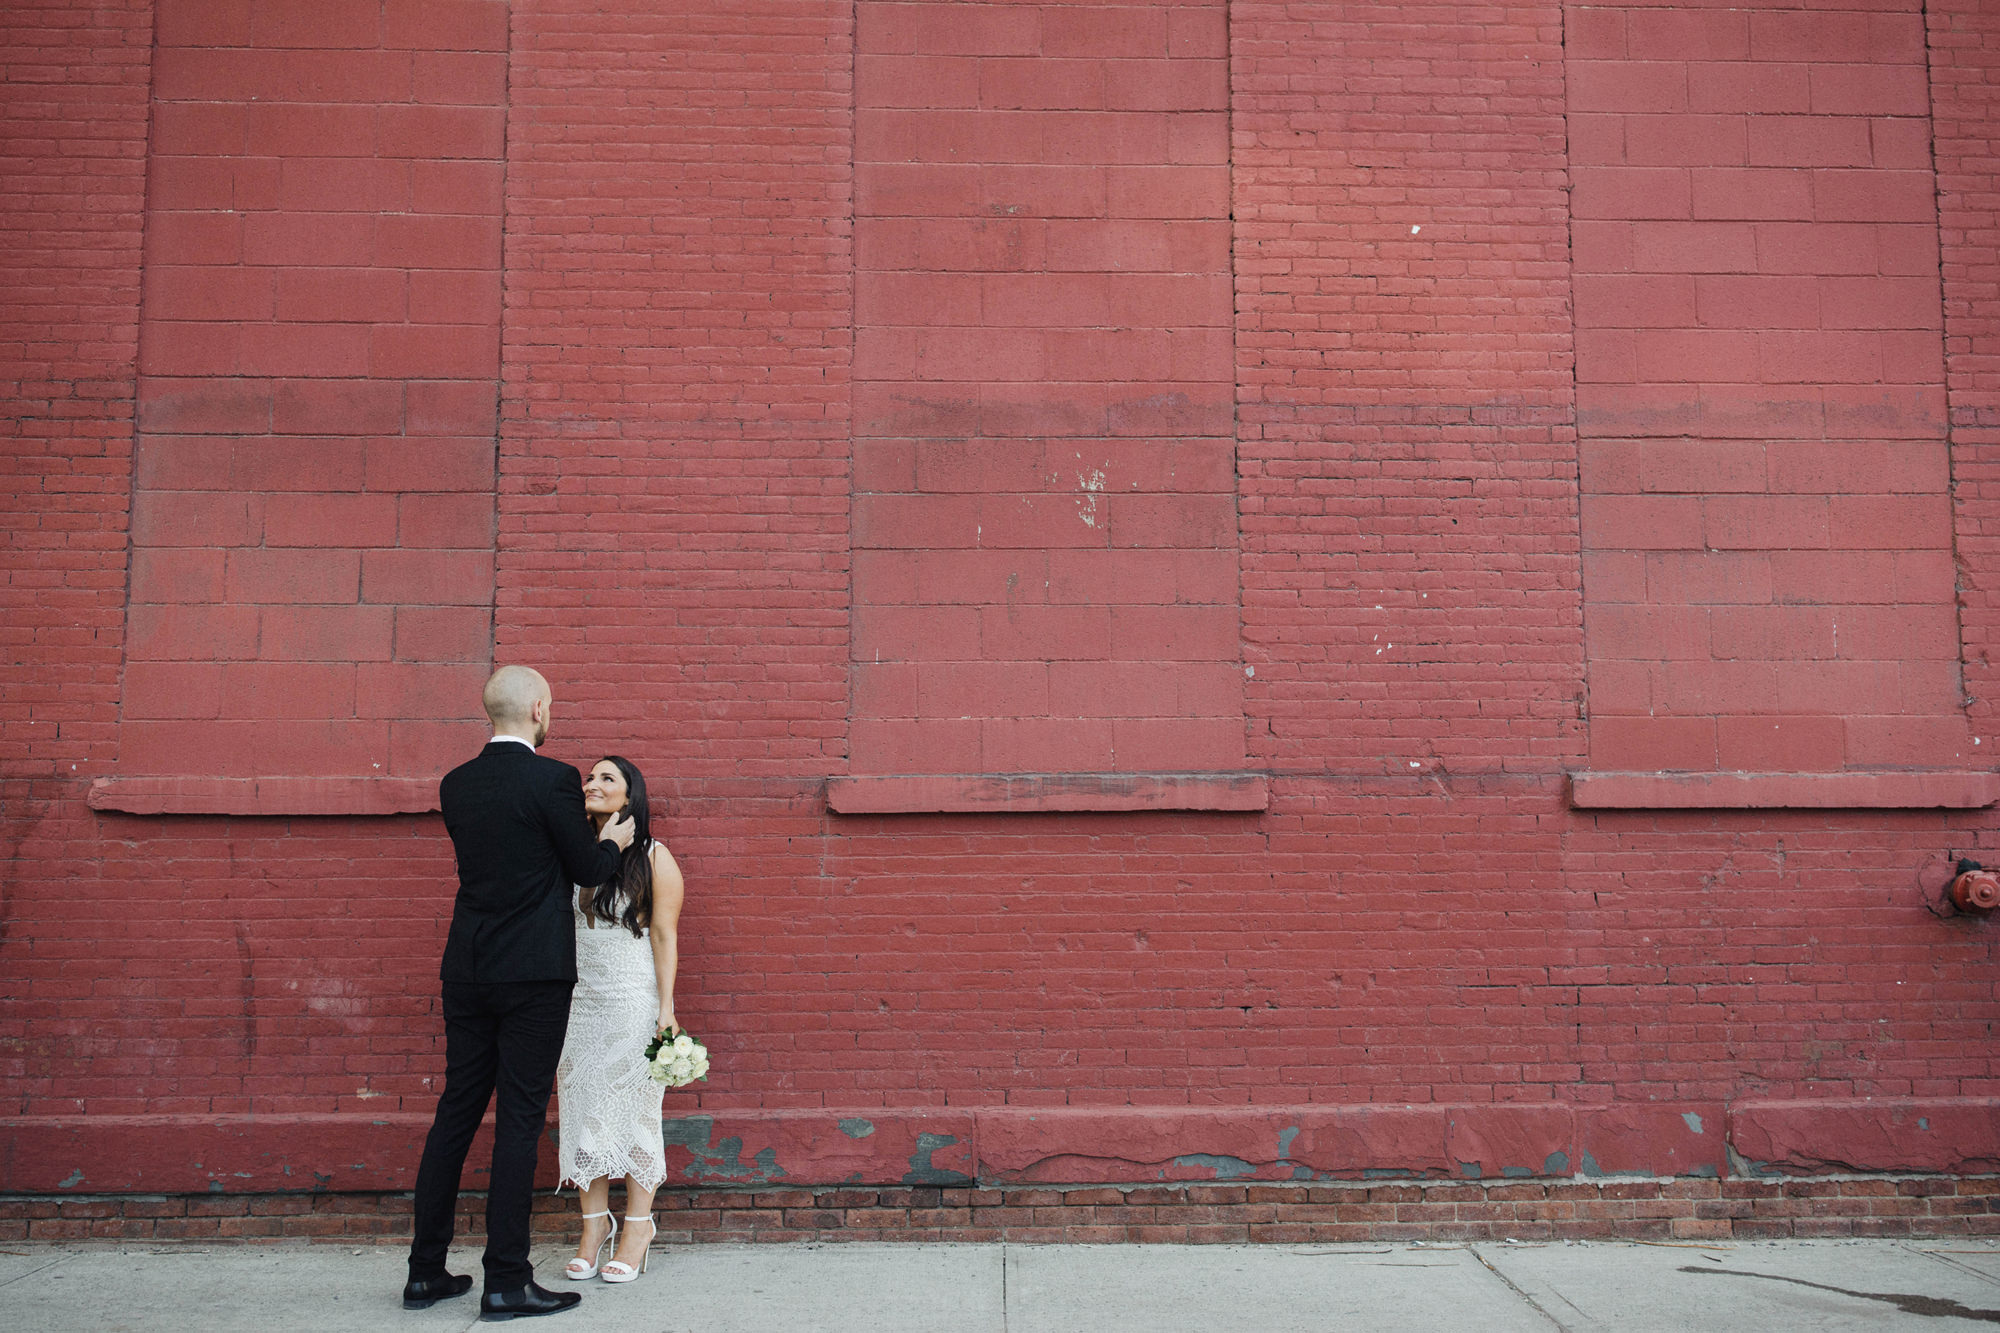 NYC_ELOPEMENT_CITYHALL_BROOKLYN_SAMMBLAKE_0035.jpg